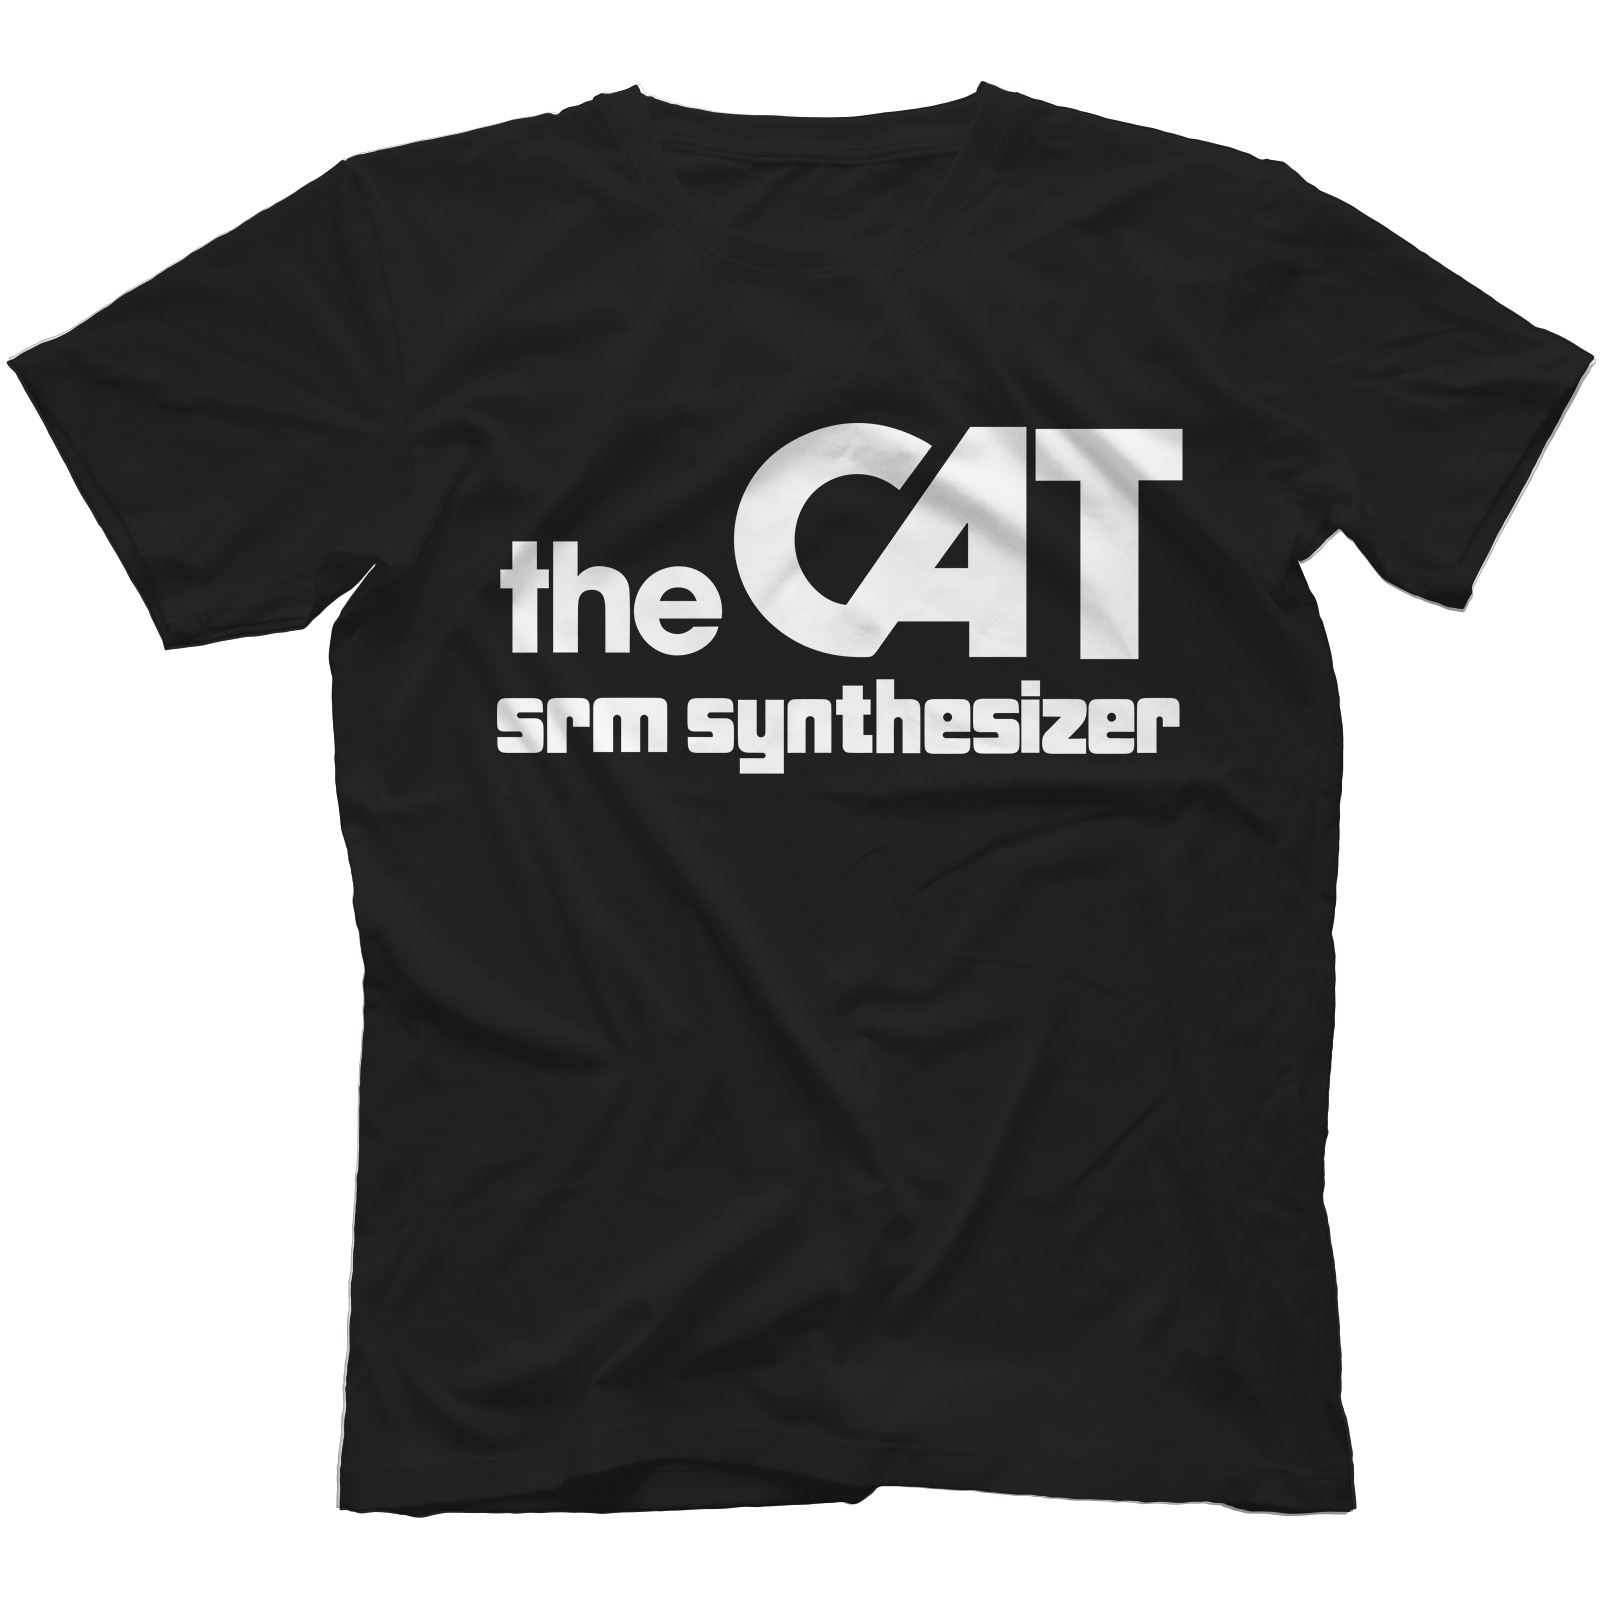 The-Cat-SRM-Synthesiser-T-Shirt-100-Cotton-Retro-Analog-Arp-Odyssey Indexbild 7